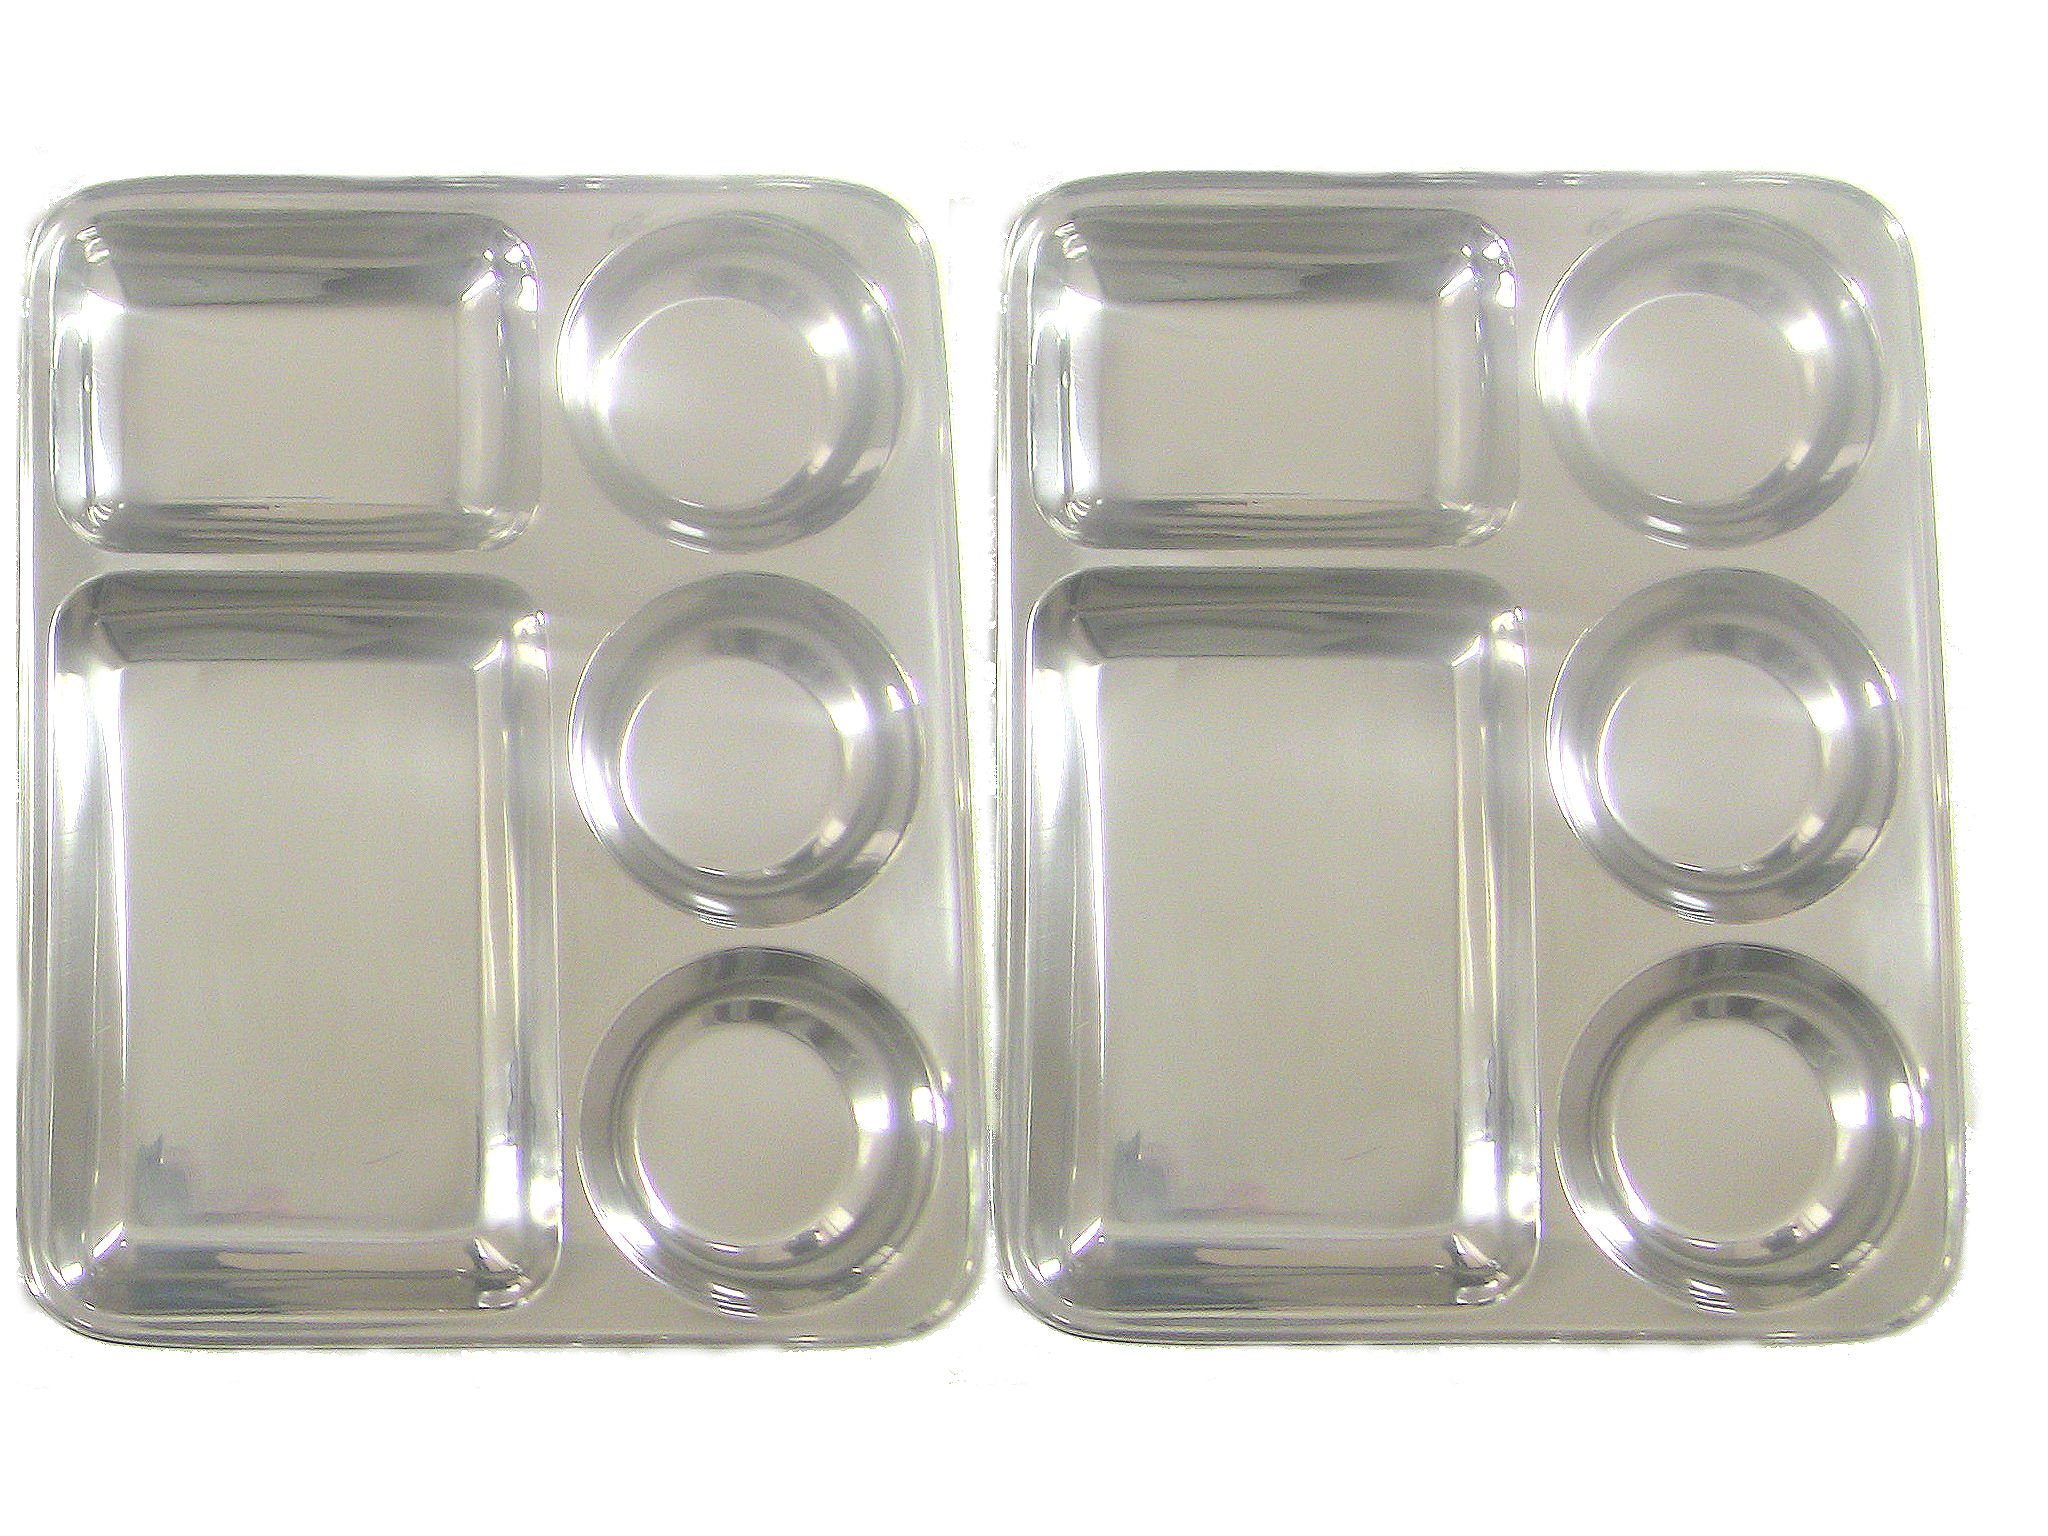 Qualways Rectangular Tray- Divided Stainless Steel Tray Set of 2, Stainless Steel Camping Plates, Stainless Steel Dinner plates